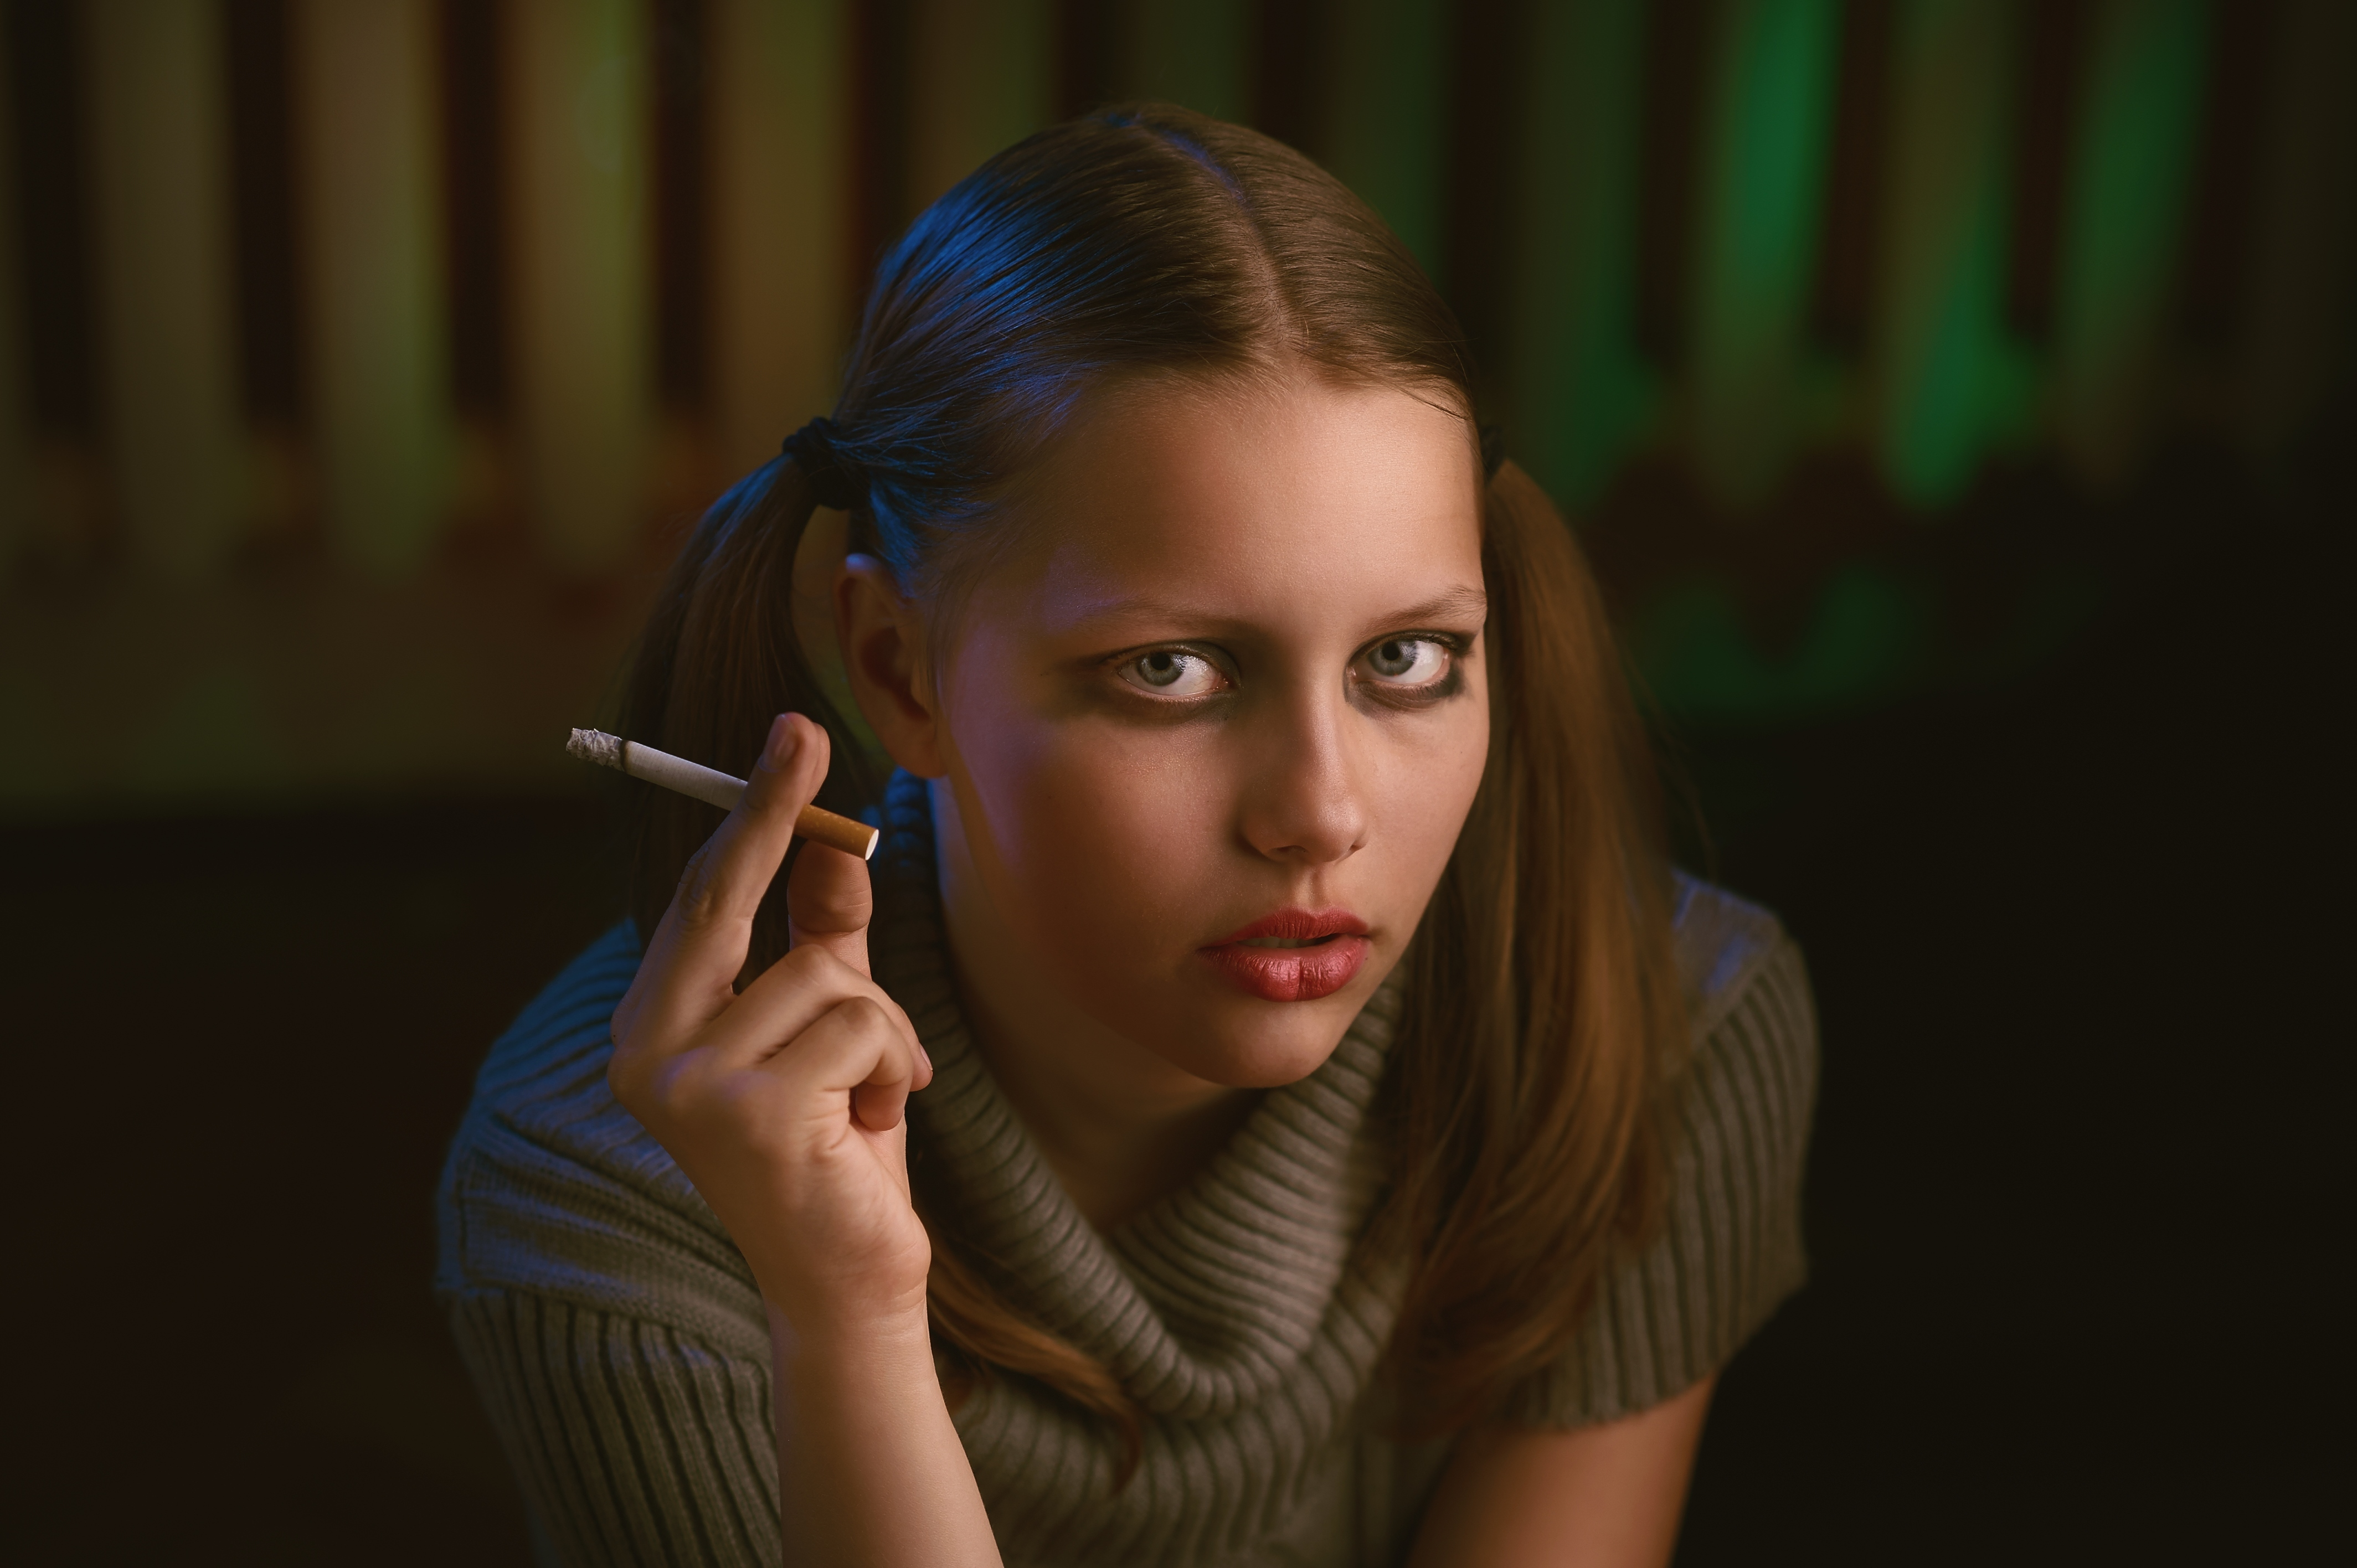 Three crucial steps to prevent young people from smoking, drinking and taking drugs